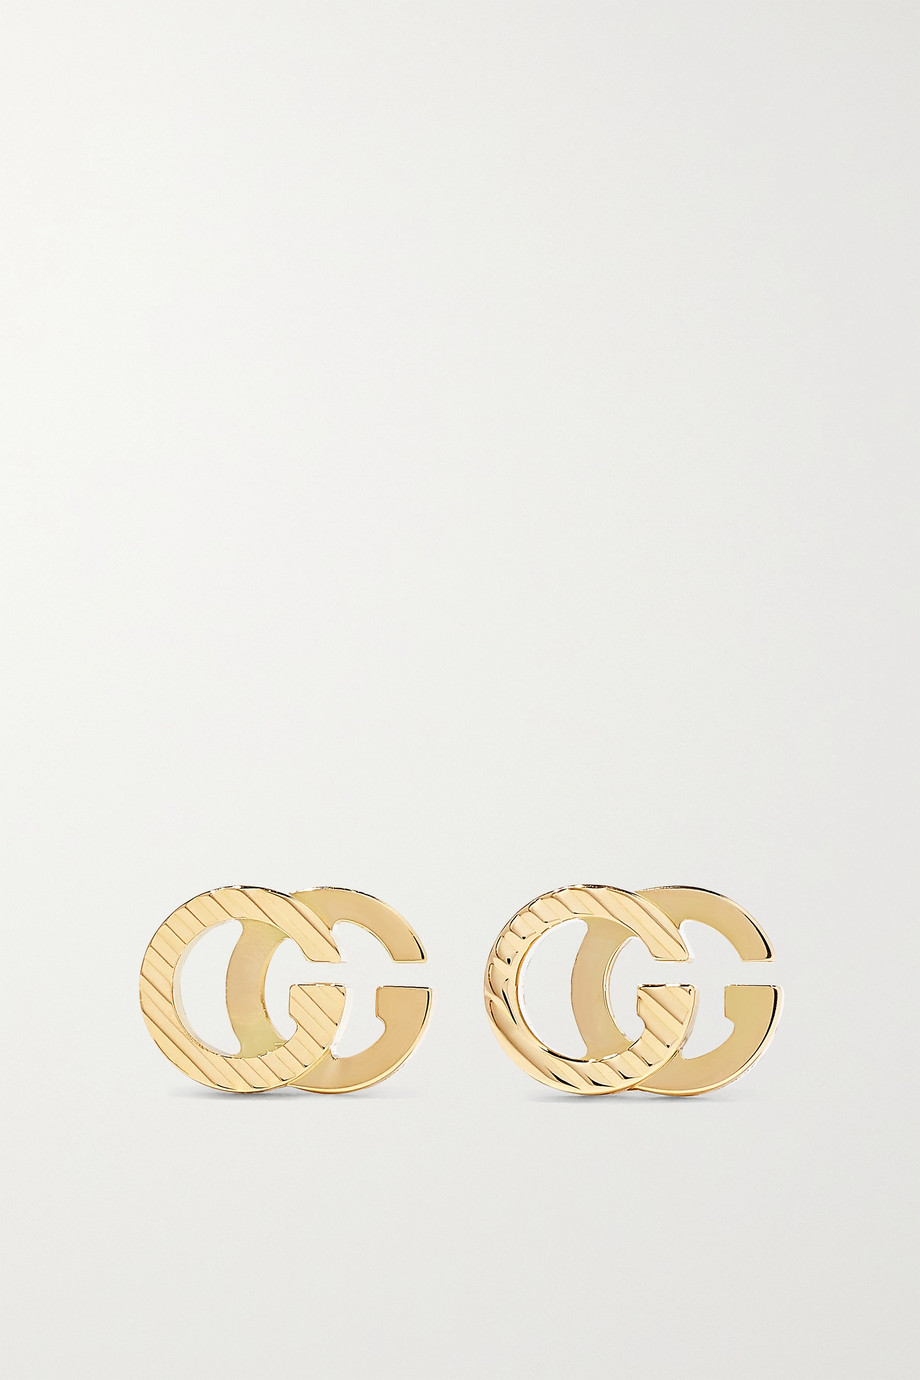 GUCCI GG Running 18-karat gold earrings